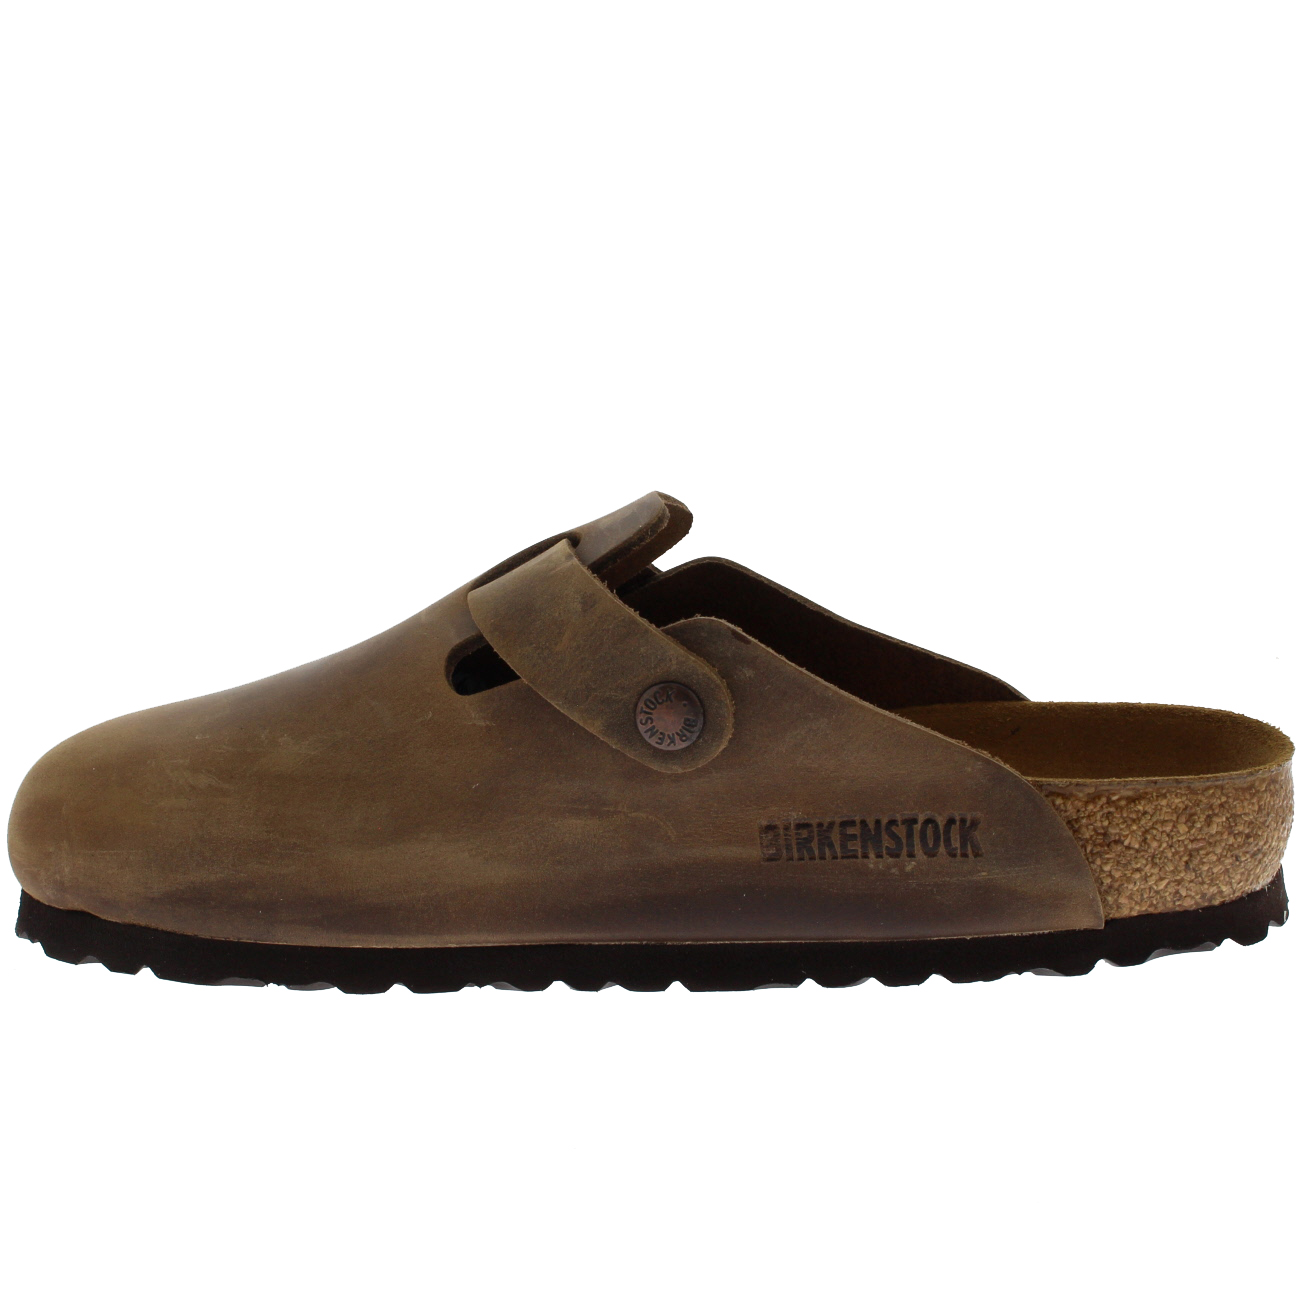 Womens Birkentstock Boston Casual Oiled Oiled Oiled Leather Sandals Holiday Clogs US 5-11 c3cbd1